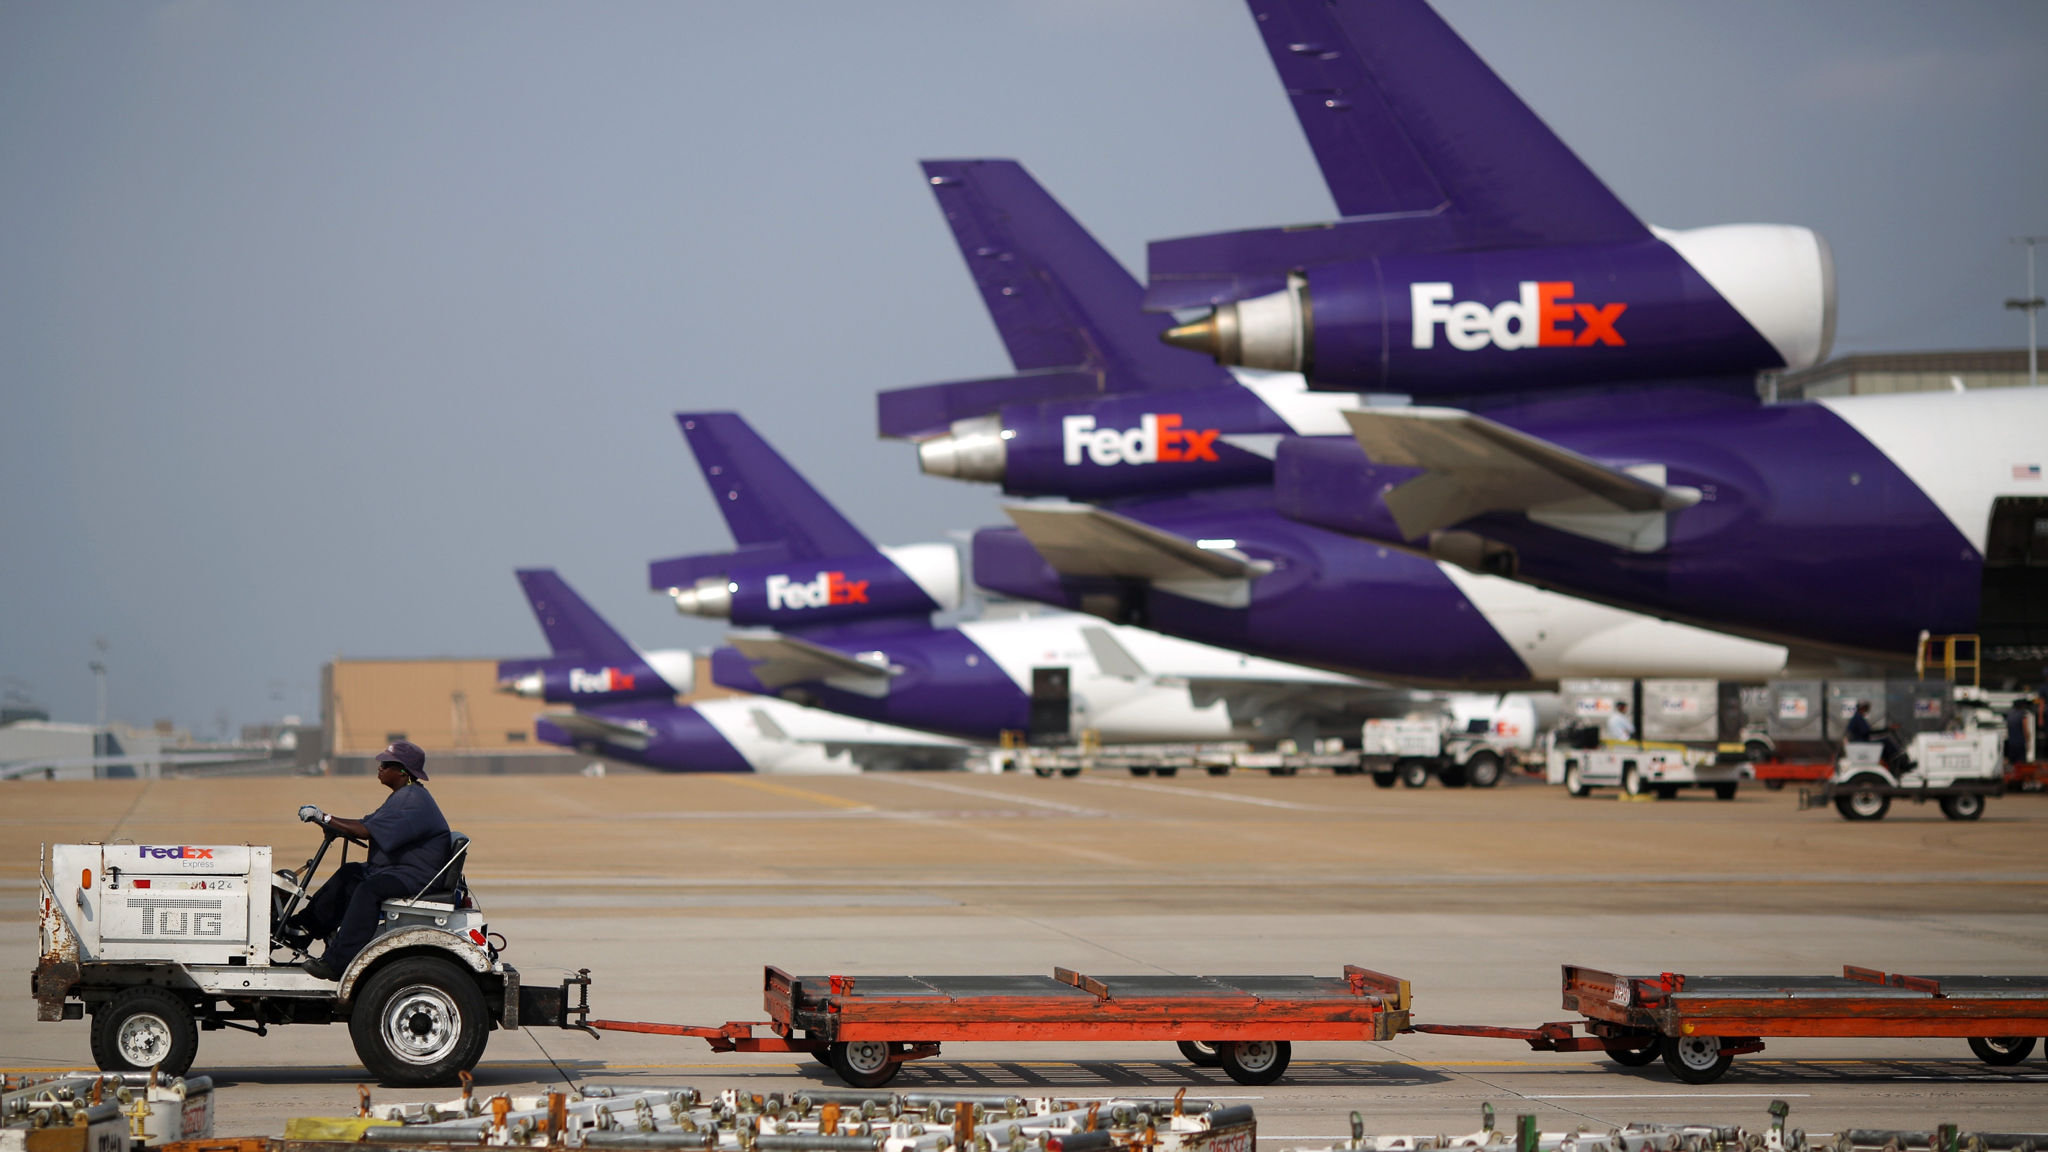 FedEx shares plunge on gloomy economic outlook